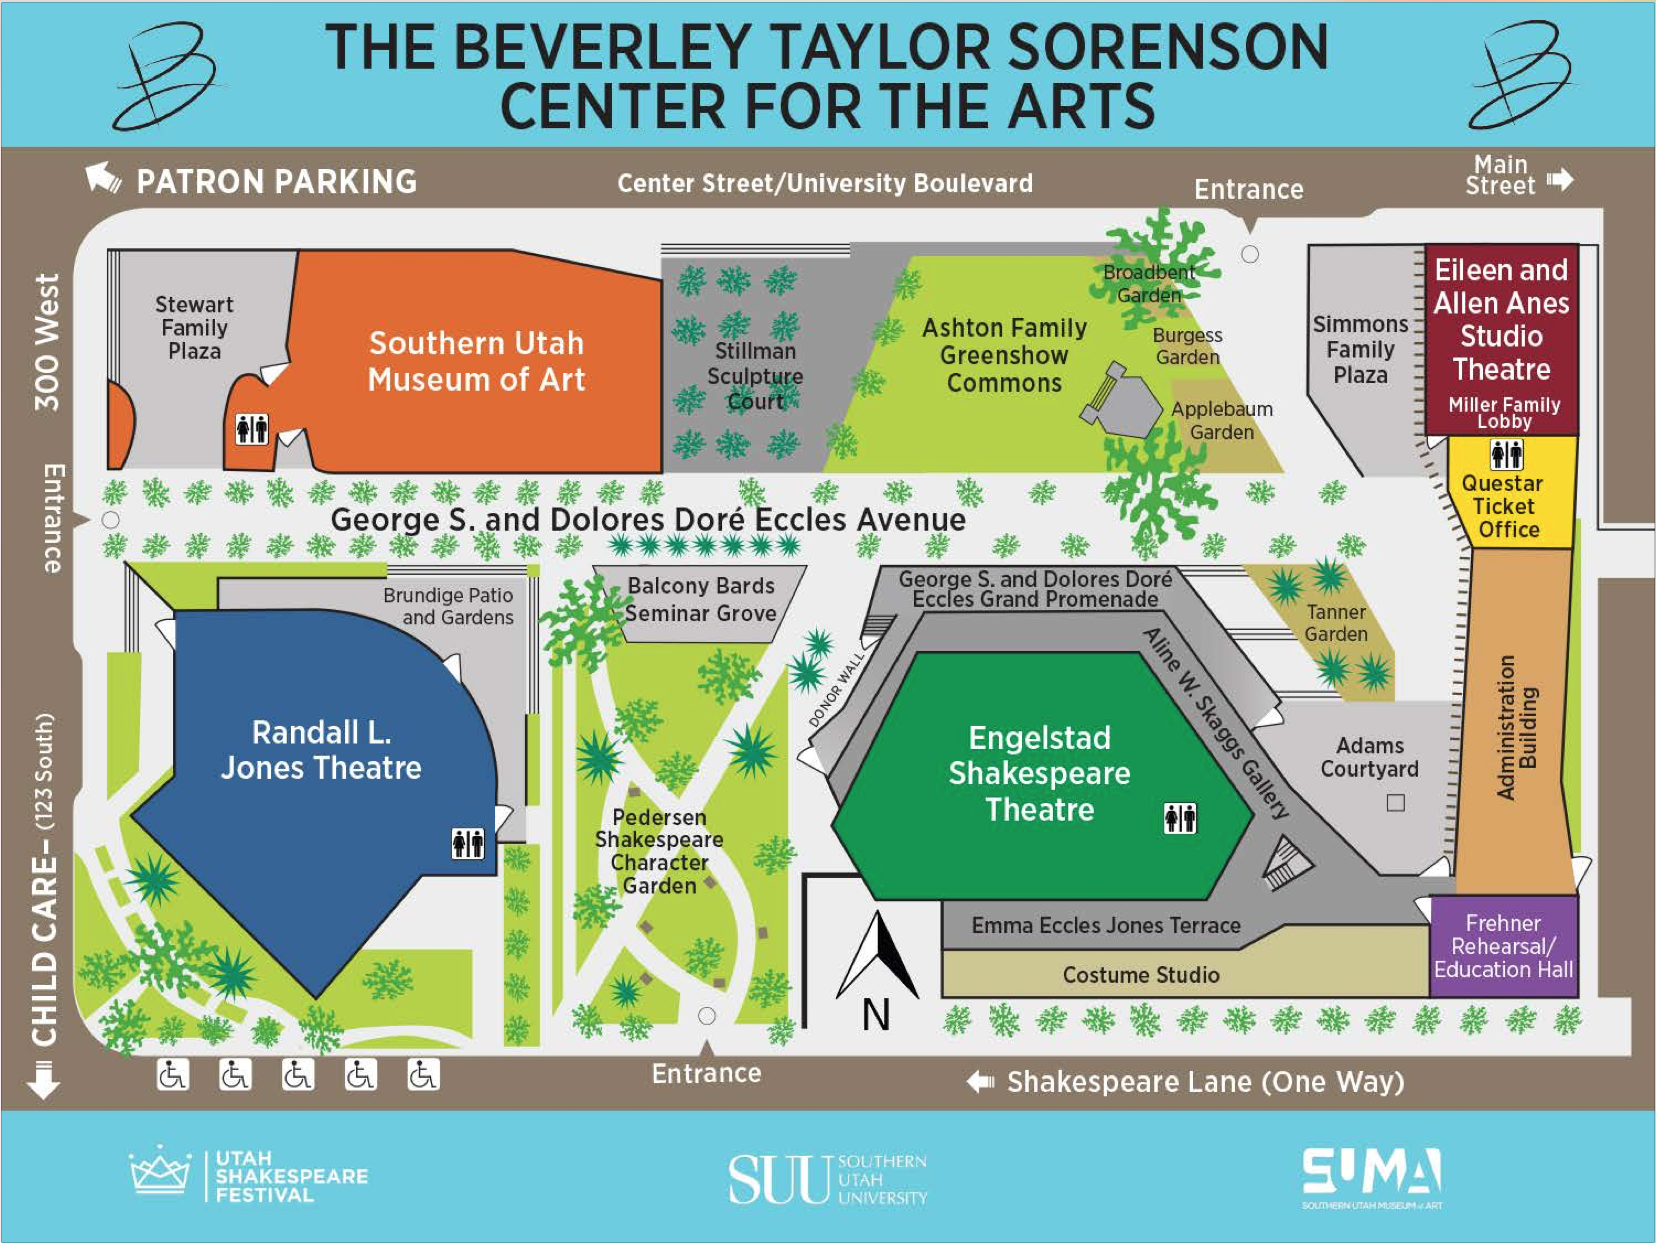 The Beverley Sorenson Center for the Arts 2016 | Site map courtesy of The Beverley; St. George News